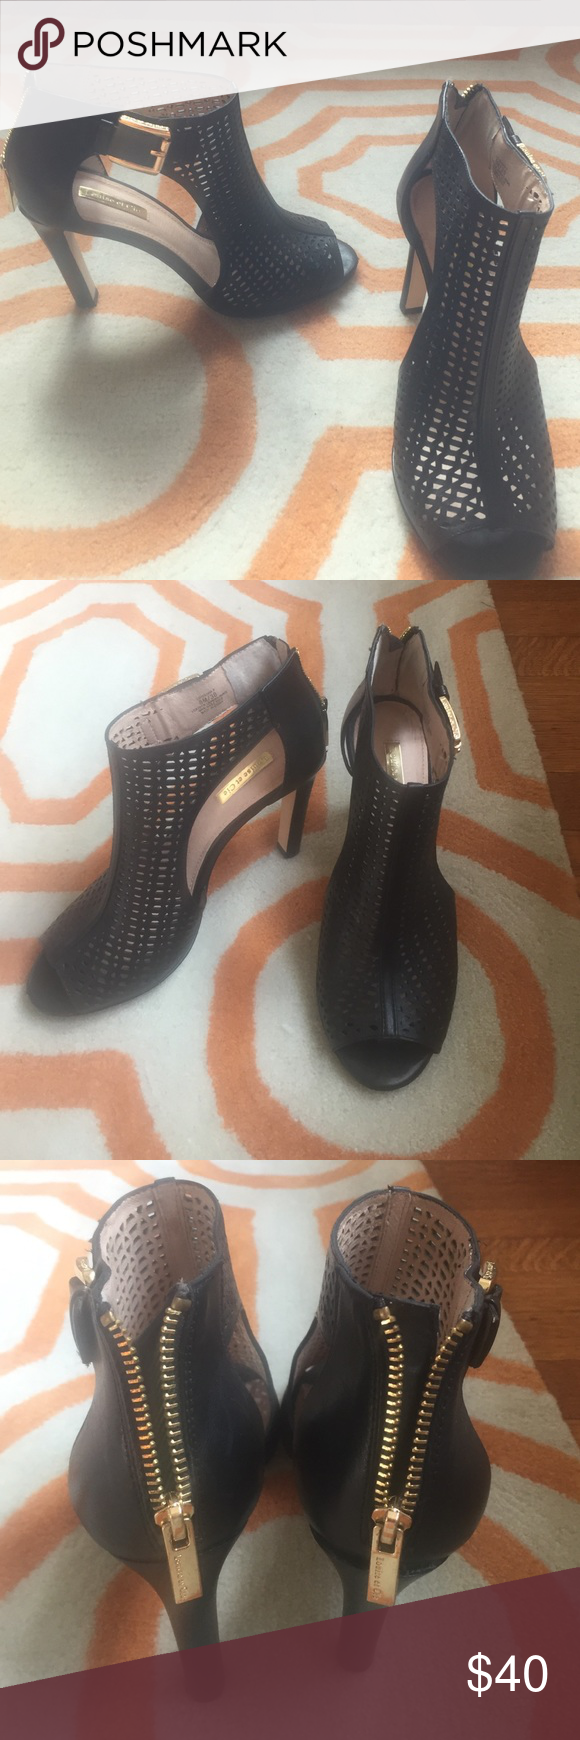 Louise et Cie shoes. Gorgeous Louise et Cie shoes. Black leather. Size 8/38. Worn once to a wedding. Bought at Nordstrom. louise e cie Shoes